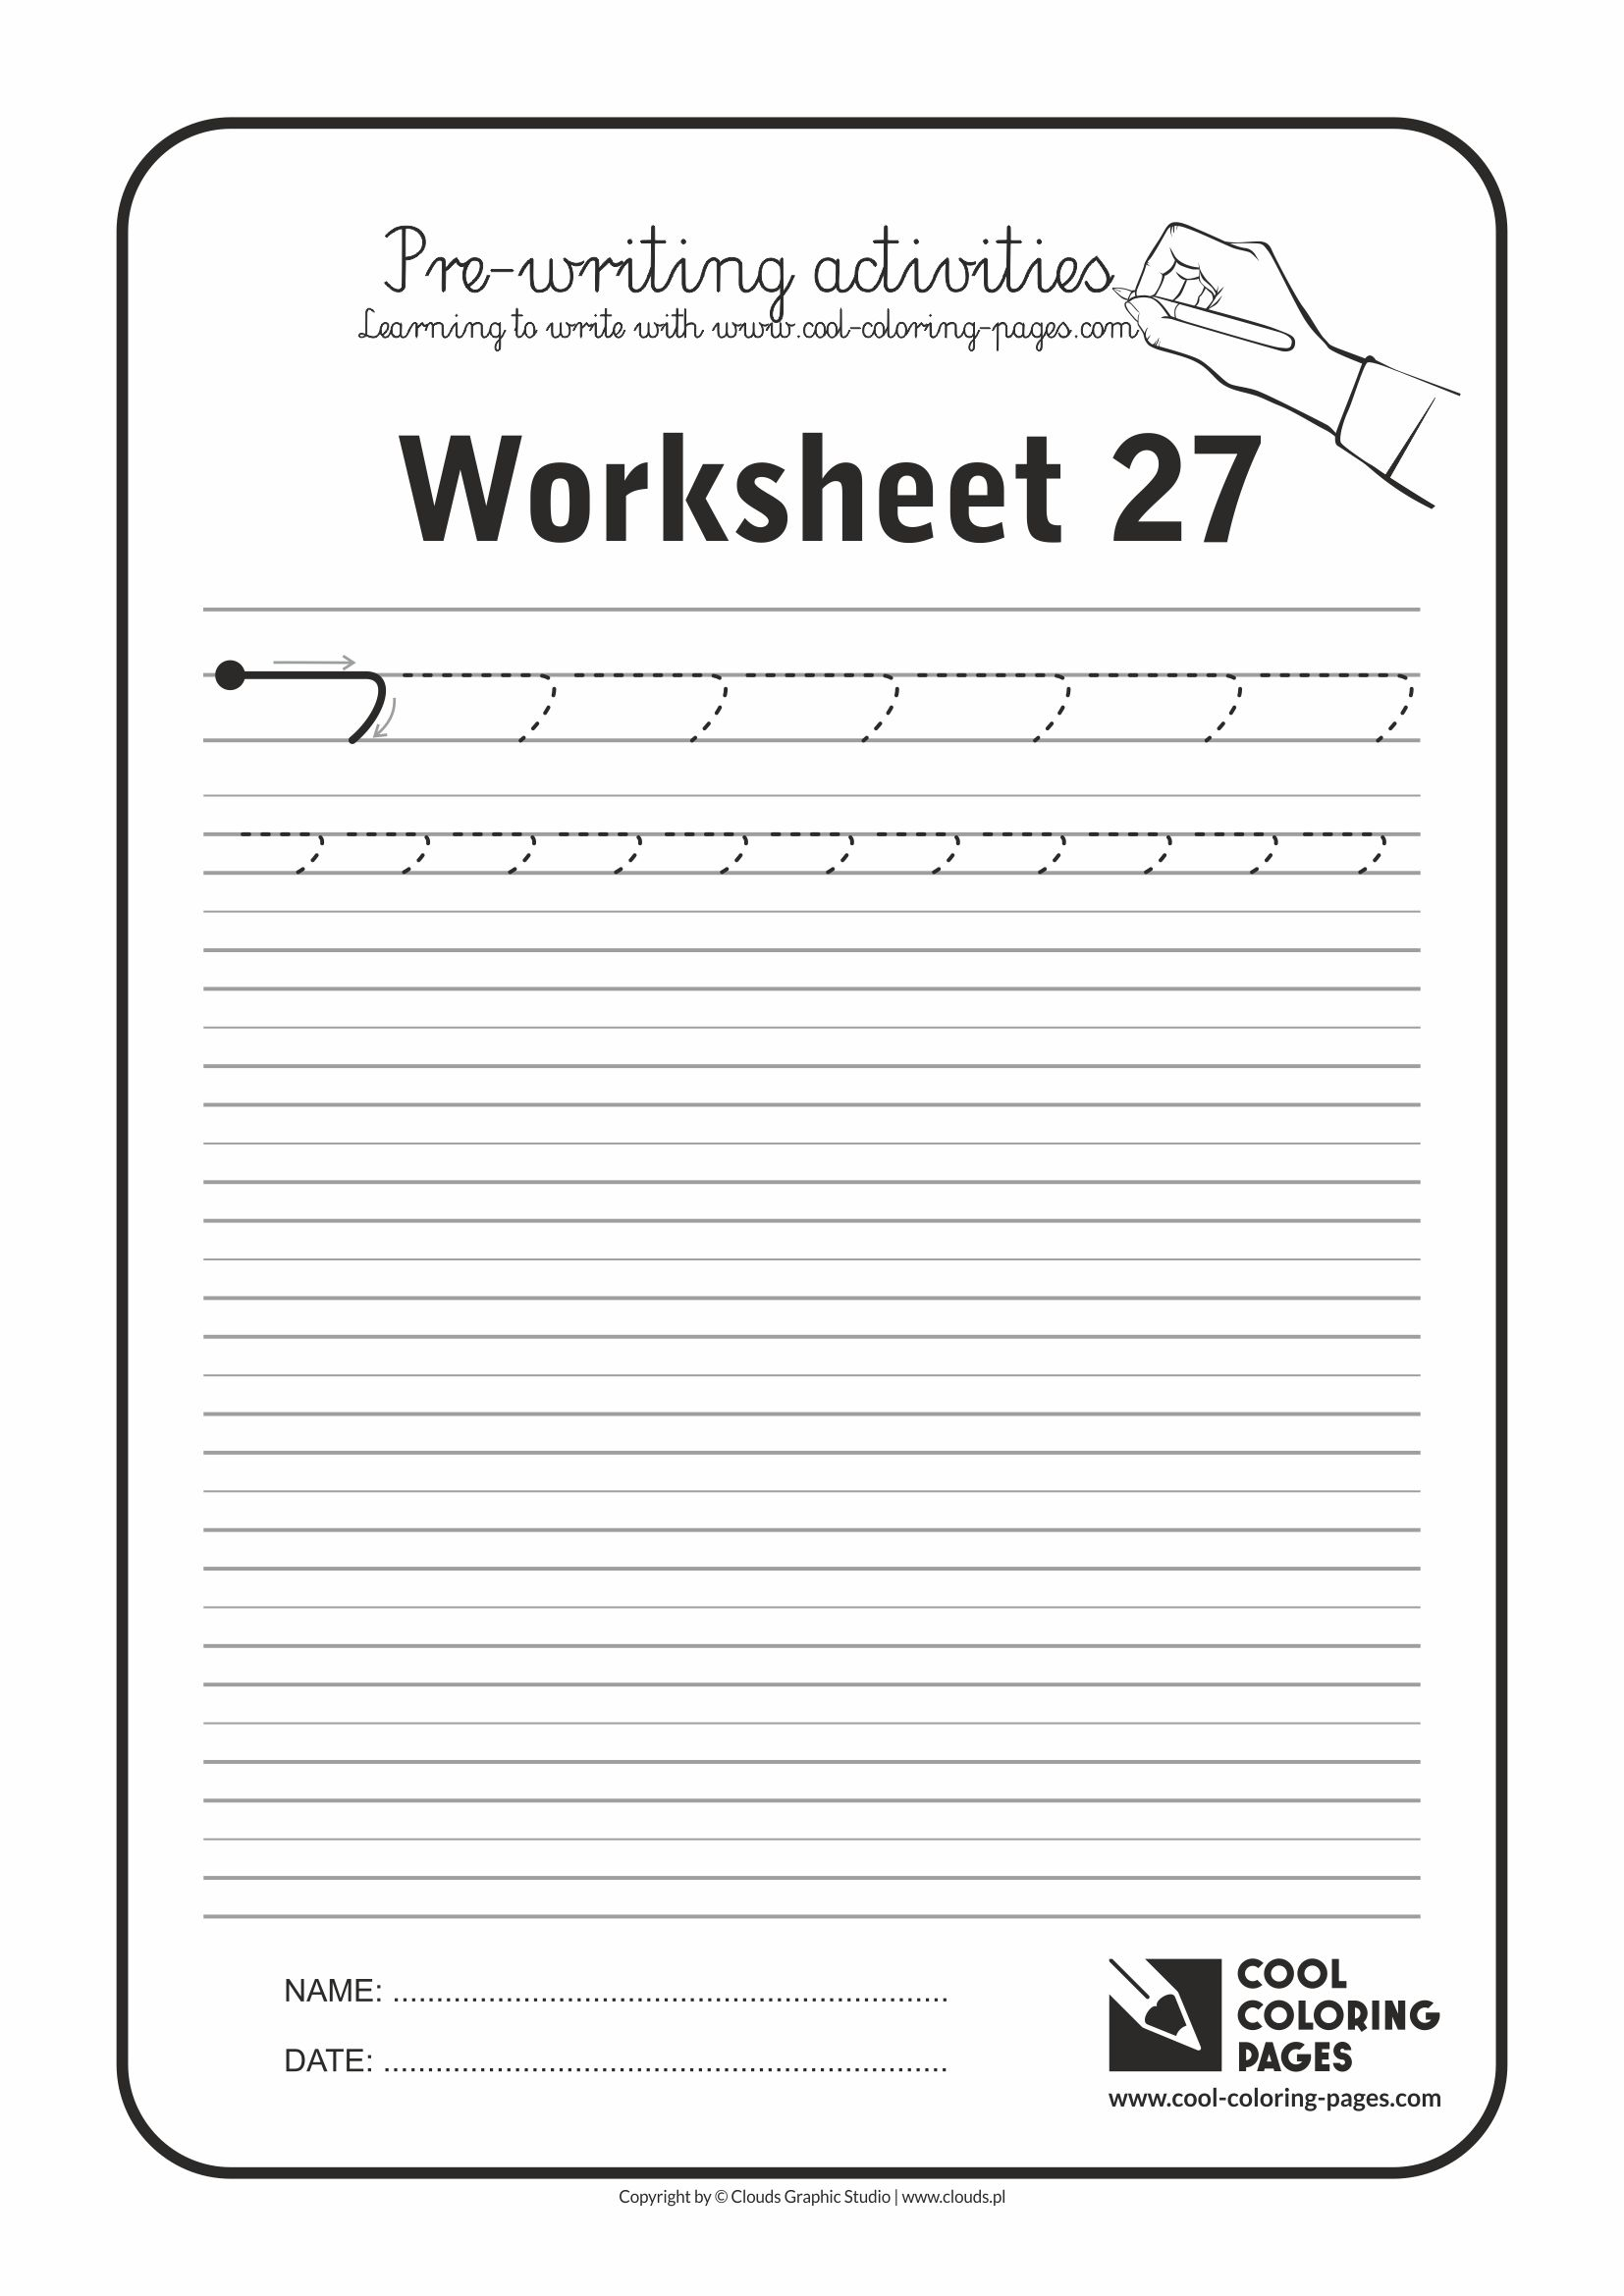 Cool Coloring Pages / Pre-writing activities / Worksheet no.27